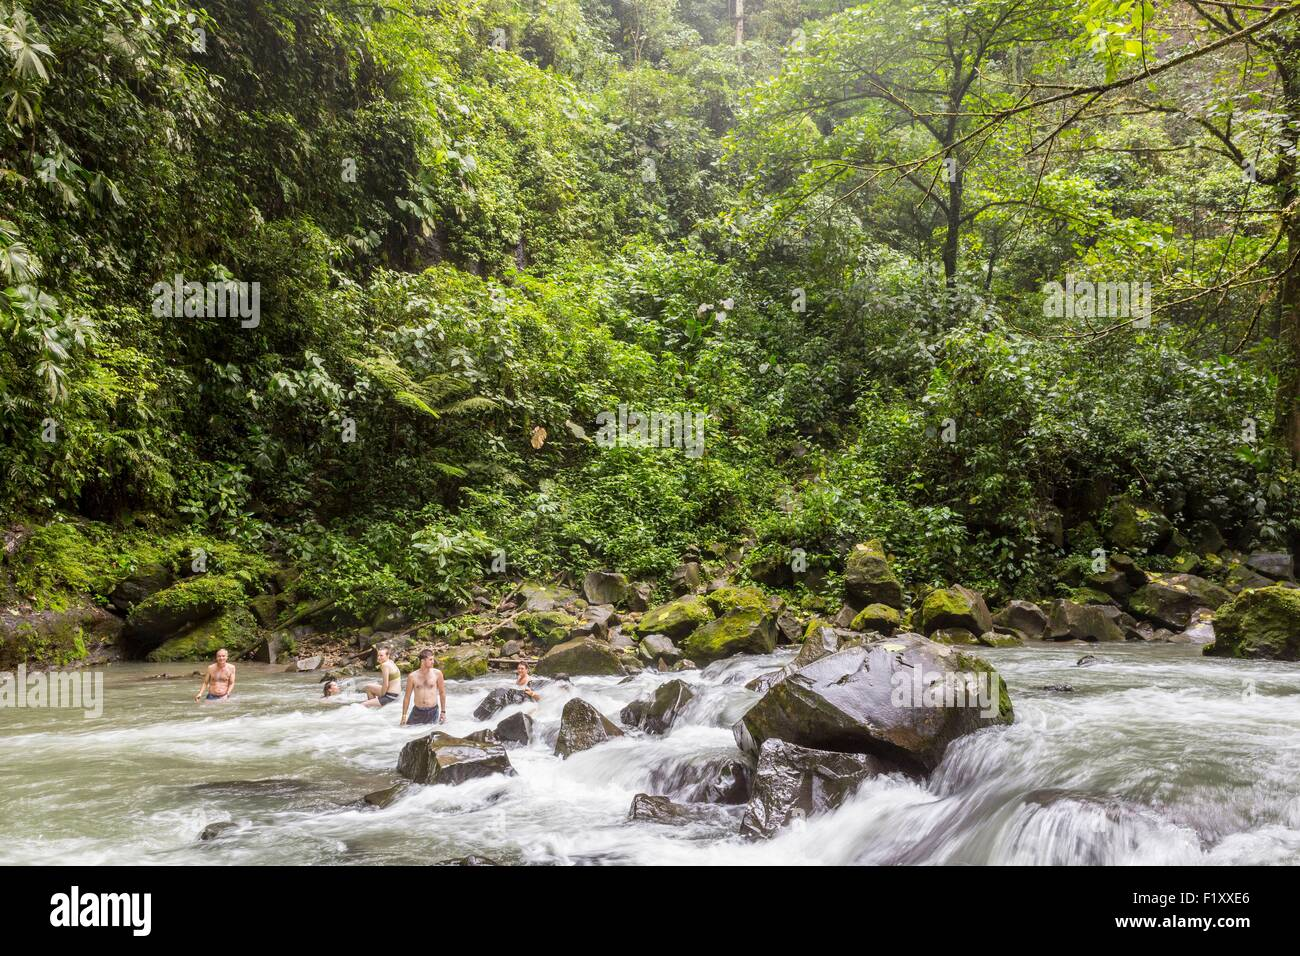 Costa Rica, Alajuela province, La Fortuna, the Catarata de la Fortuna - Stock Image